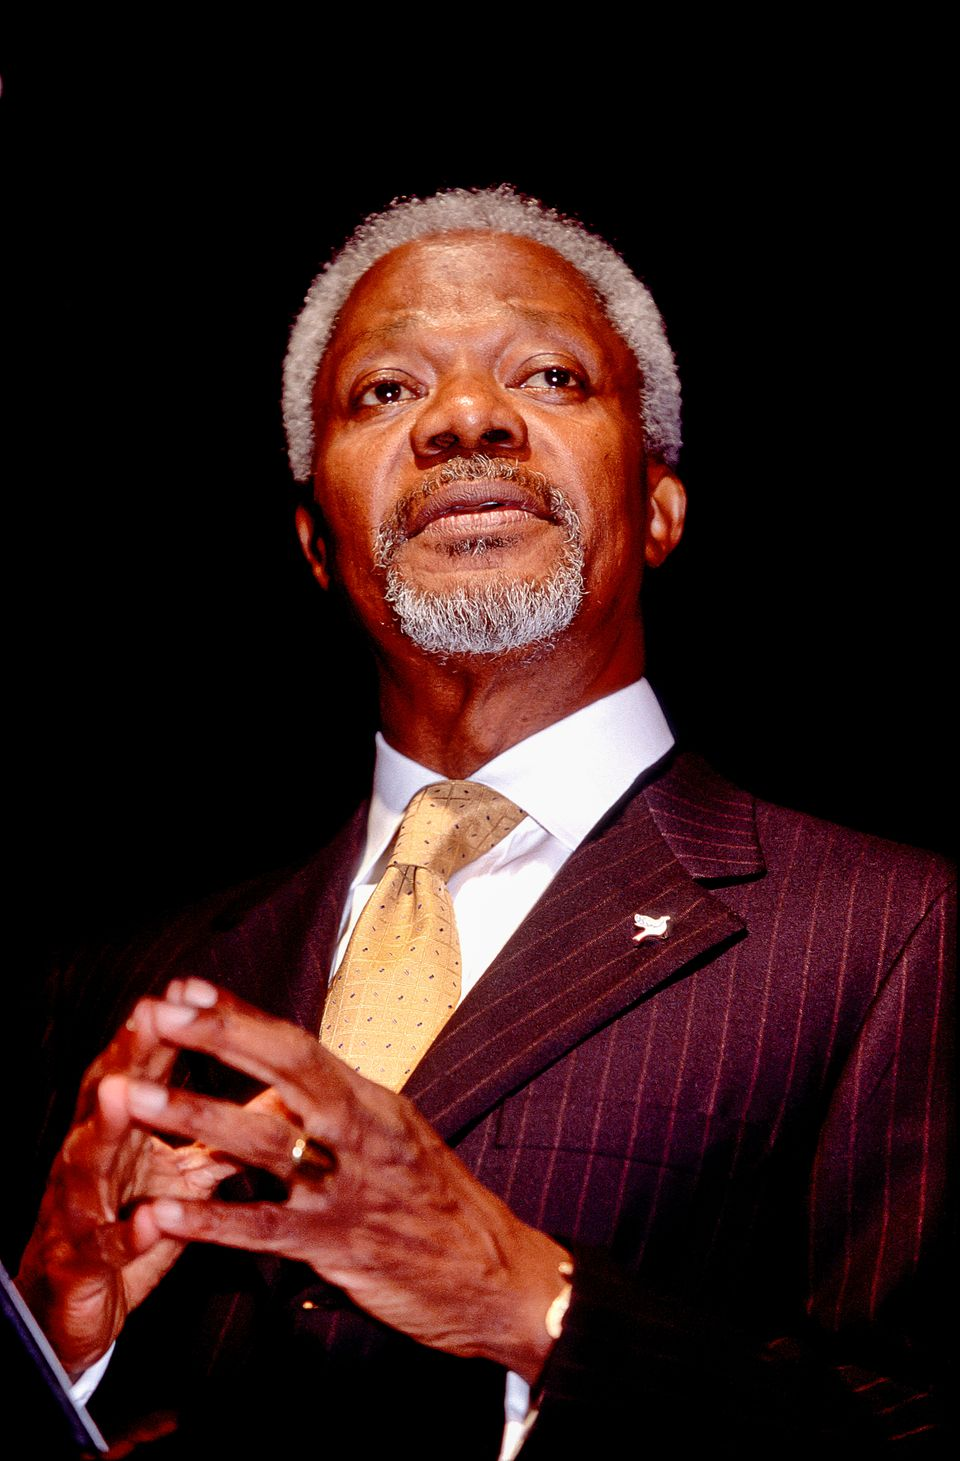 Ghanaian diplomat and Secretary-General of the United Nations, Kofi Annan introduces 'For Dancers Only,' an evening of Swing